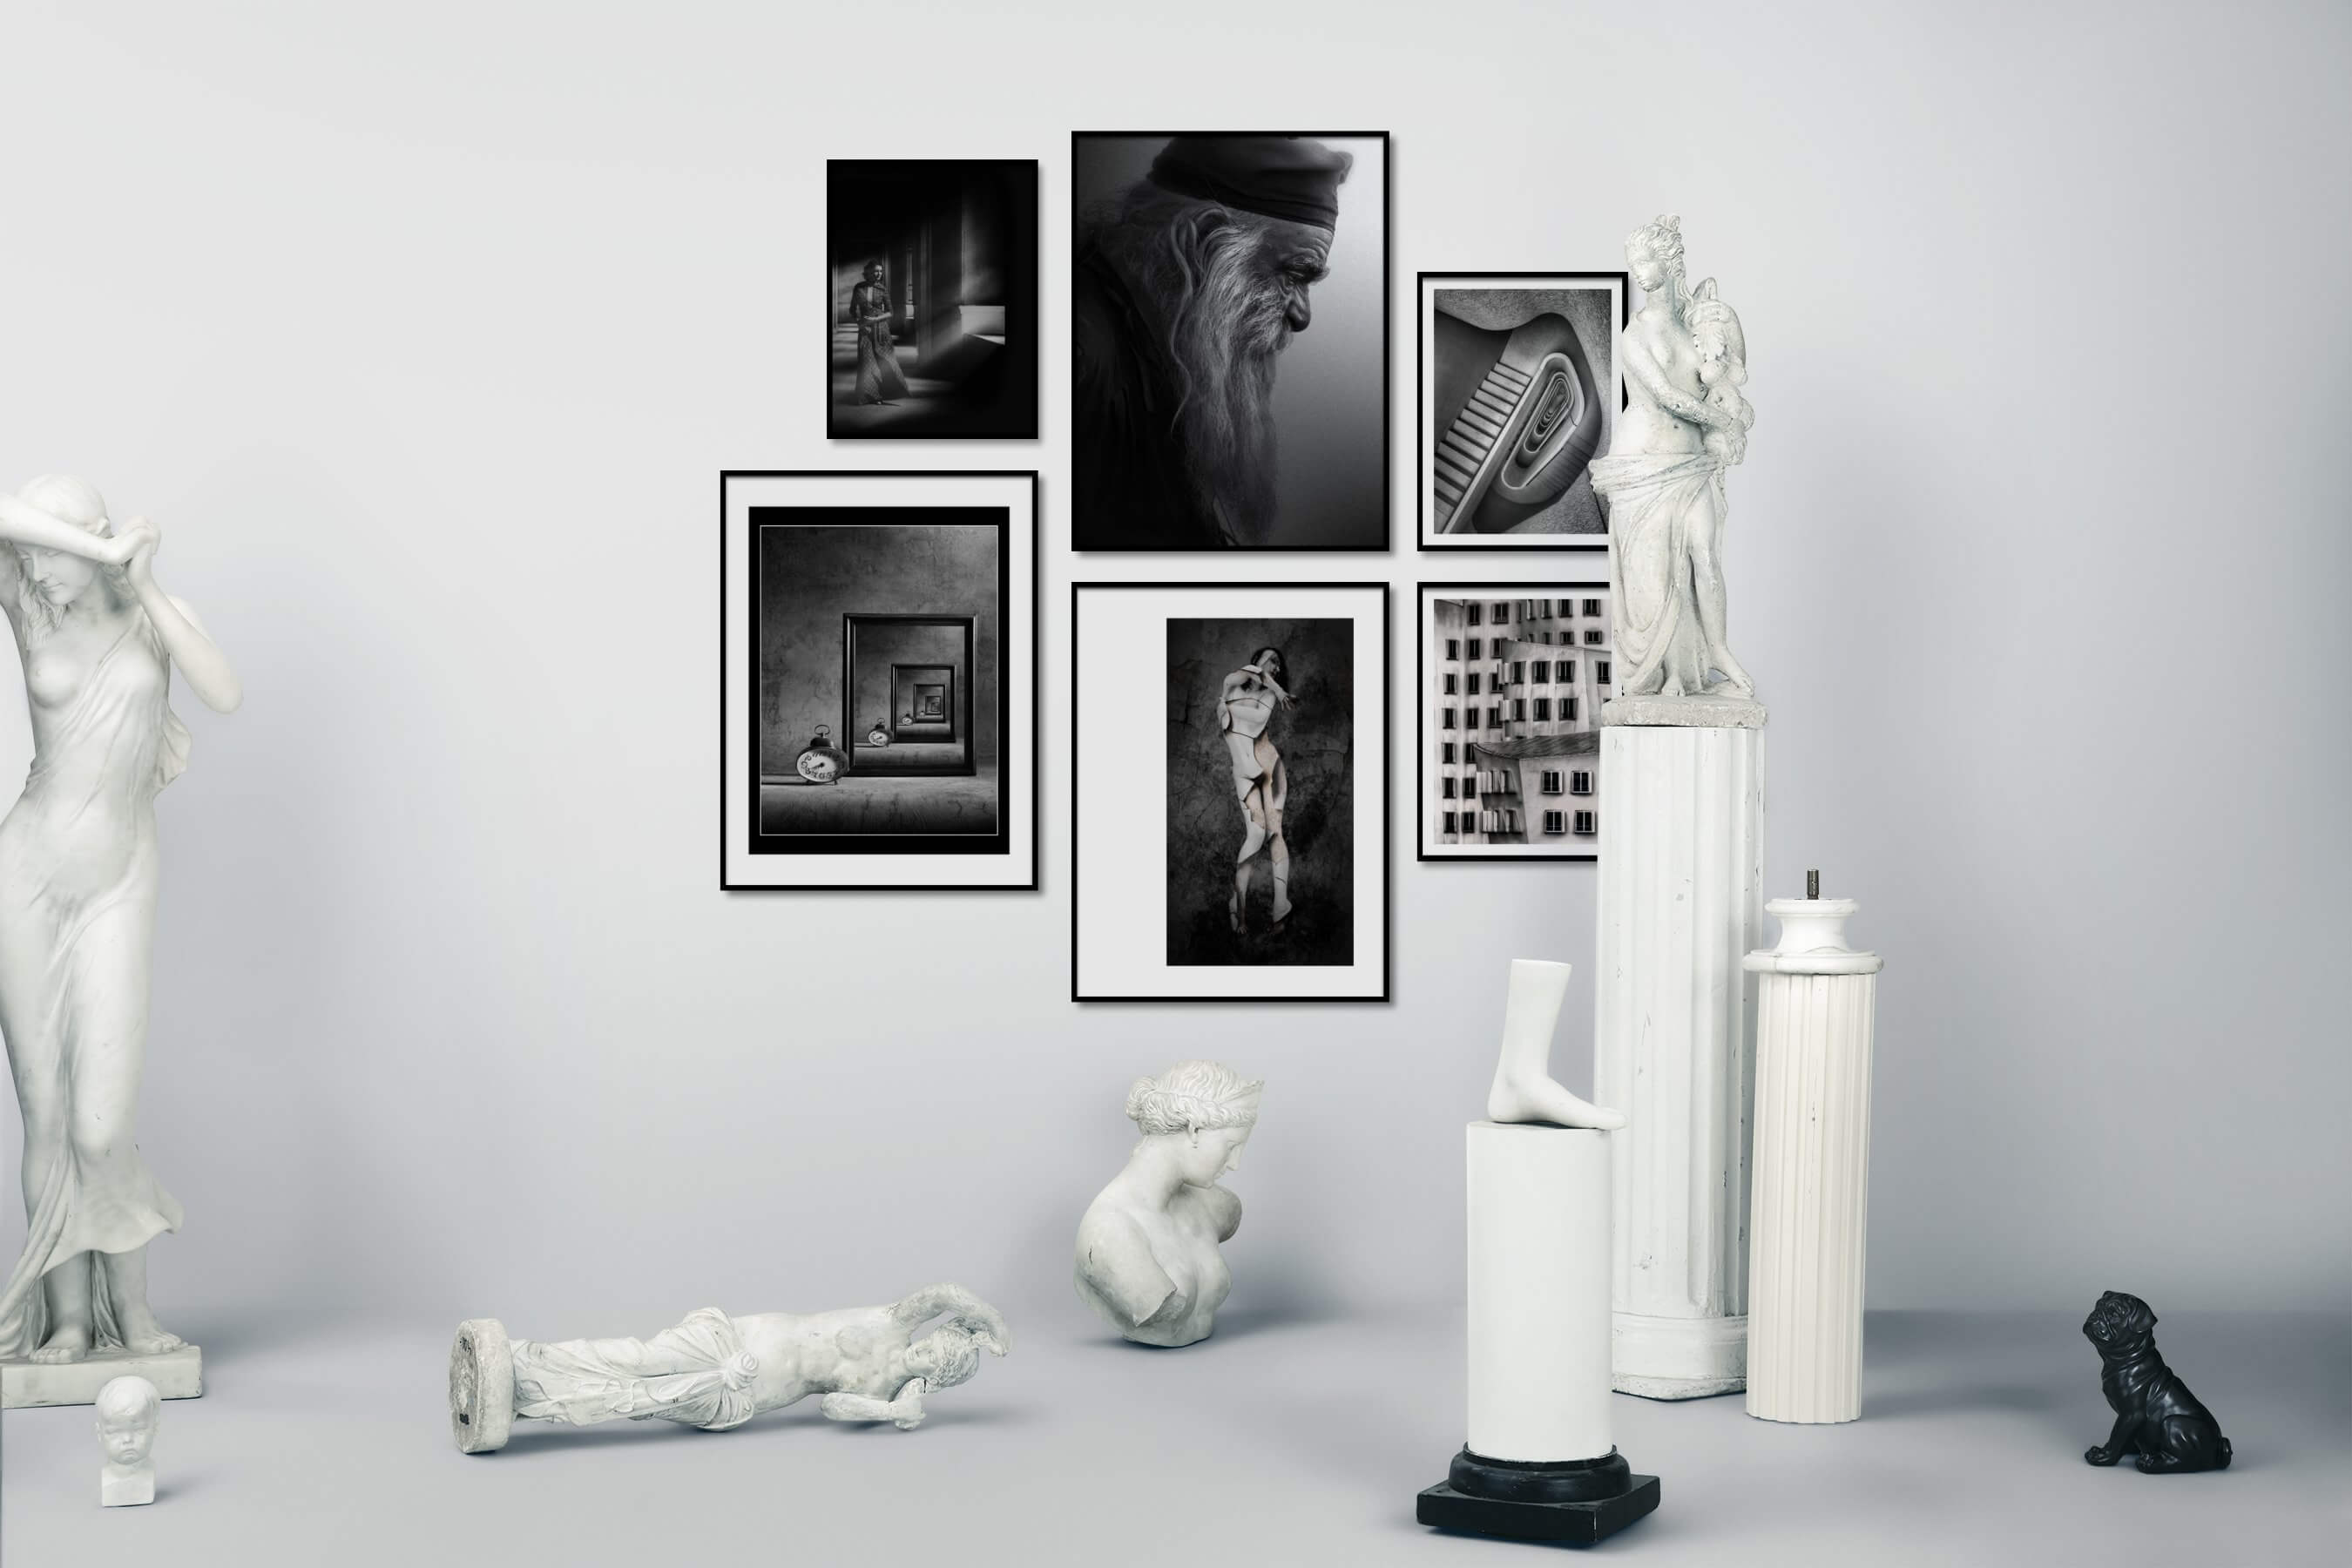 Gallery wall idea with six framed pictures arranged on a wall depicting Fashion & Beauty, Black & White, Vintage, Artsy, For the Moderate, and City Life